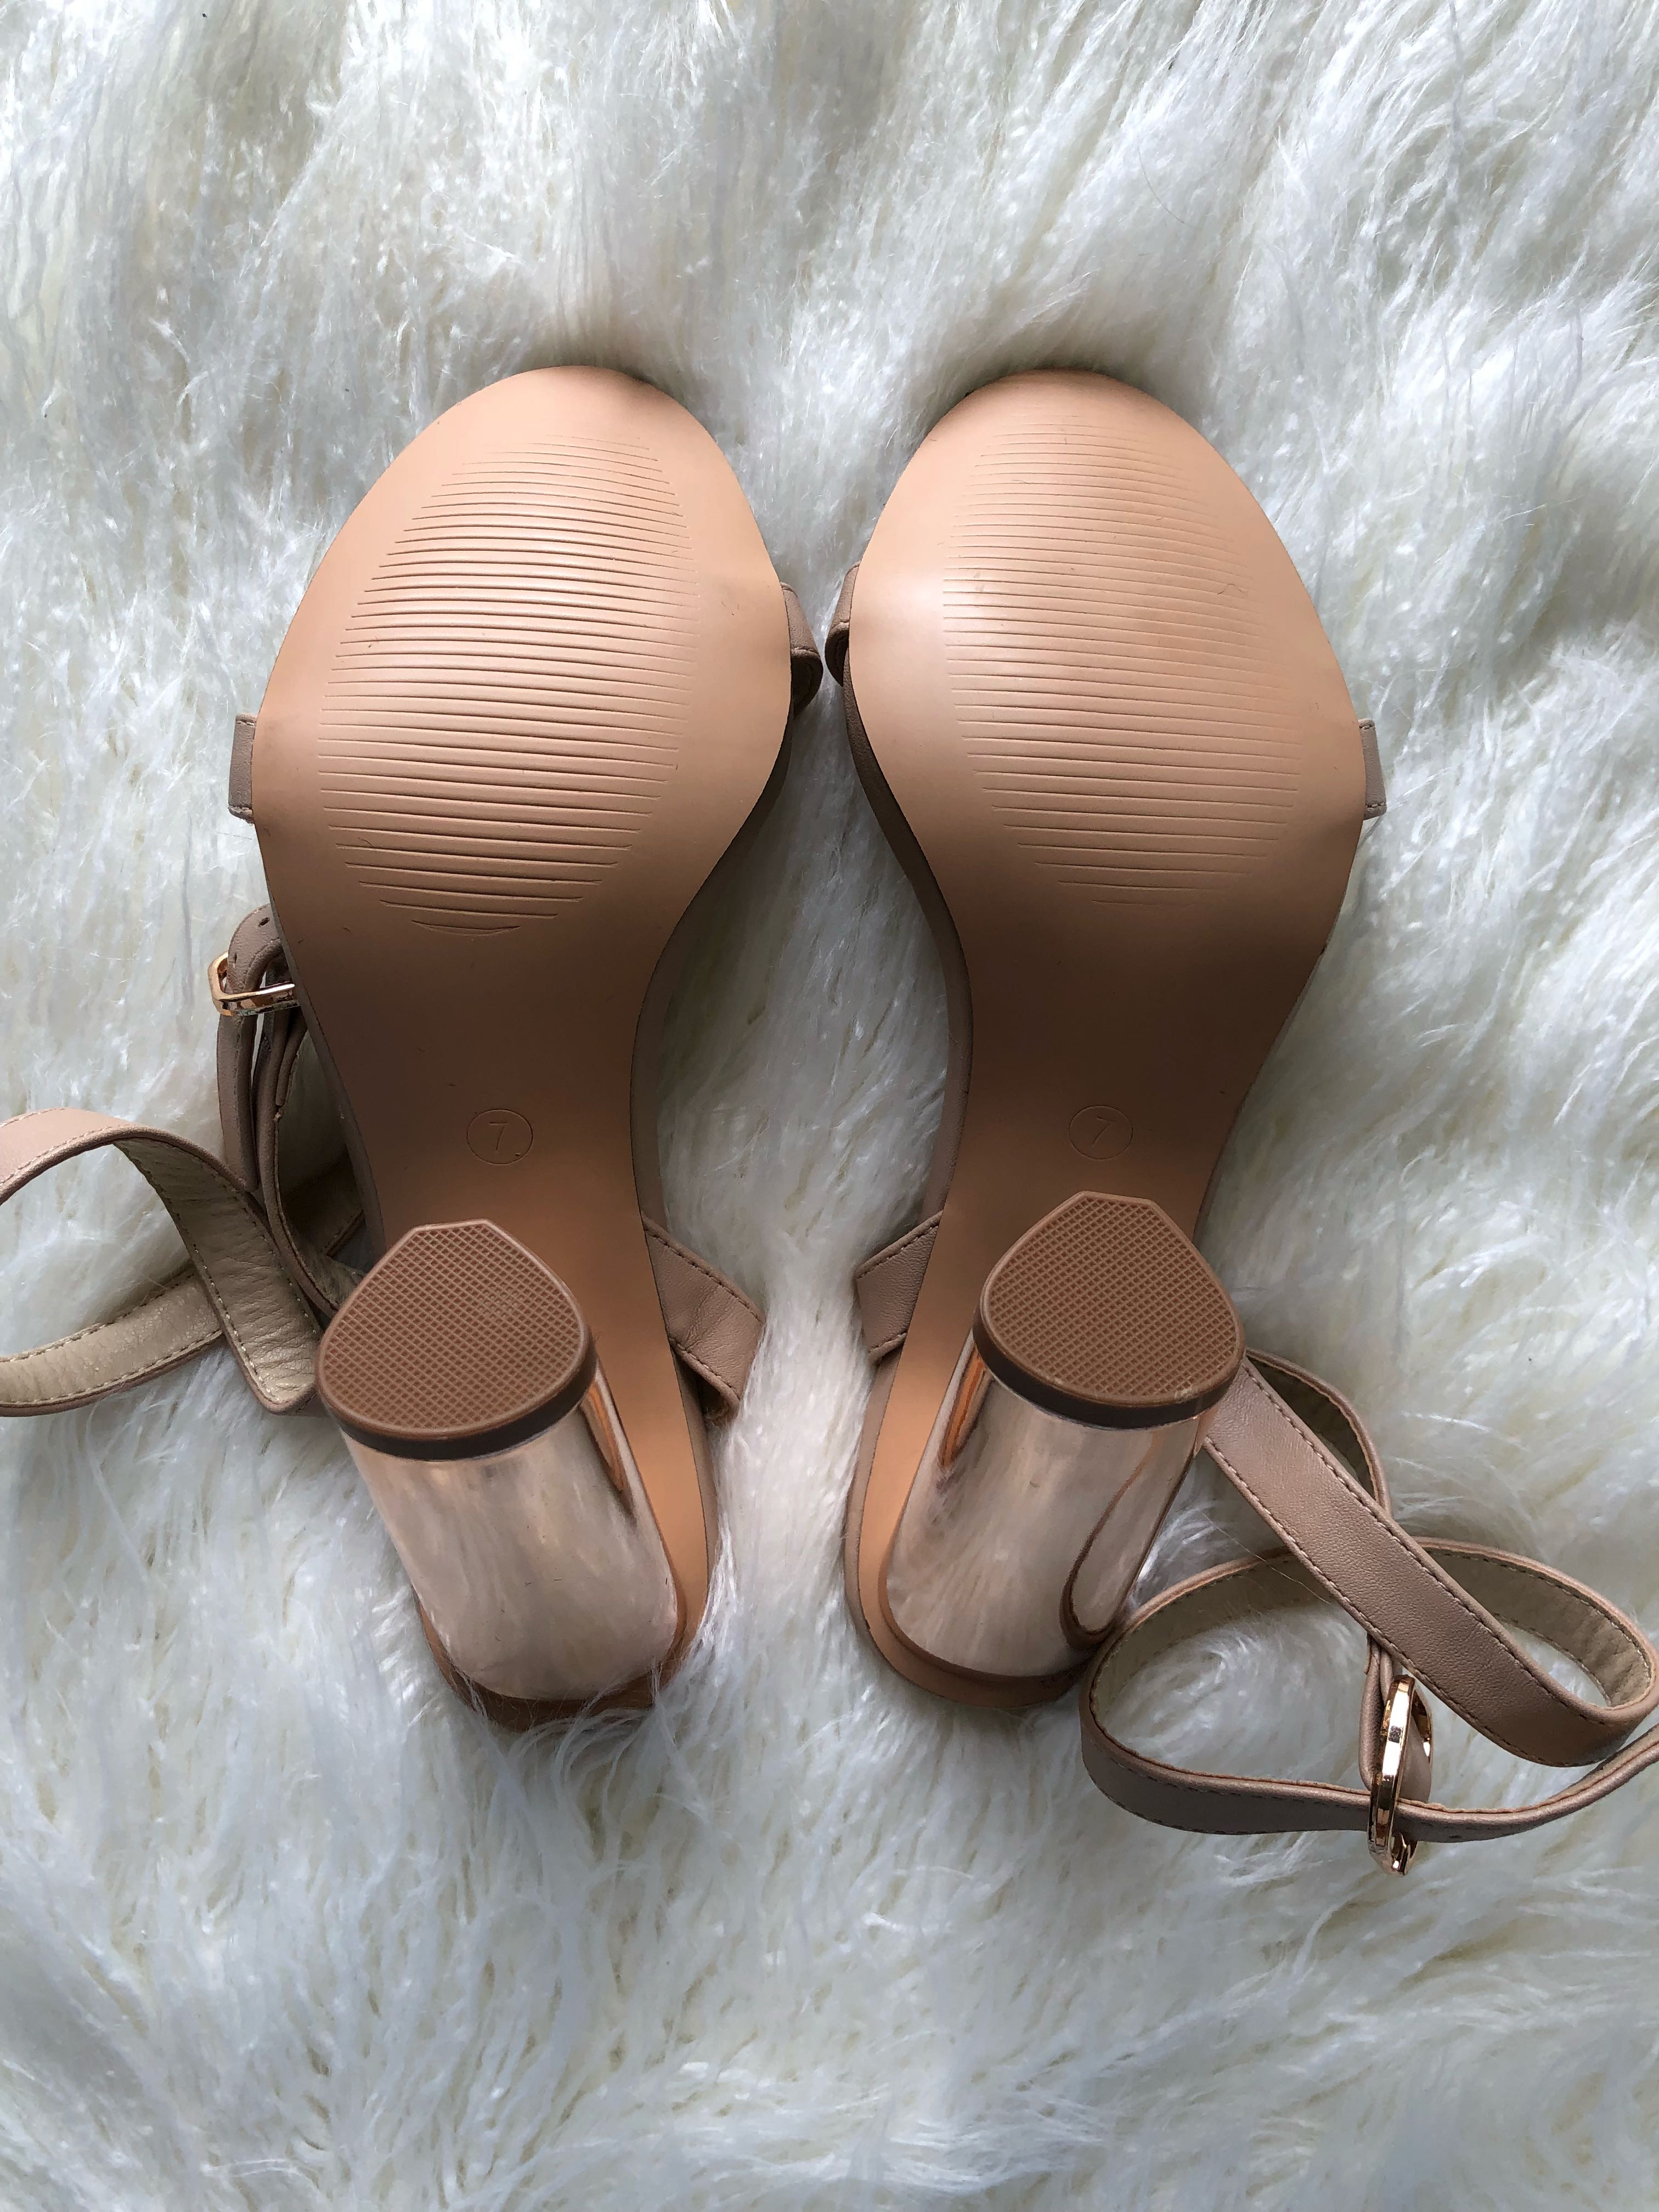 Spurr - Rose Gold Chrome Heels